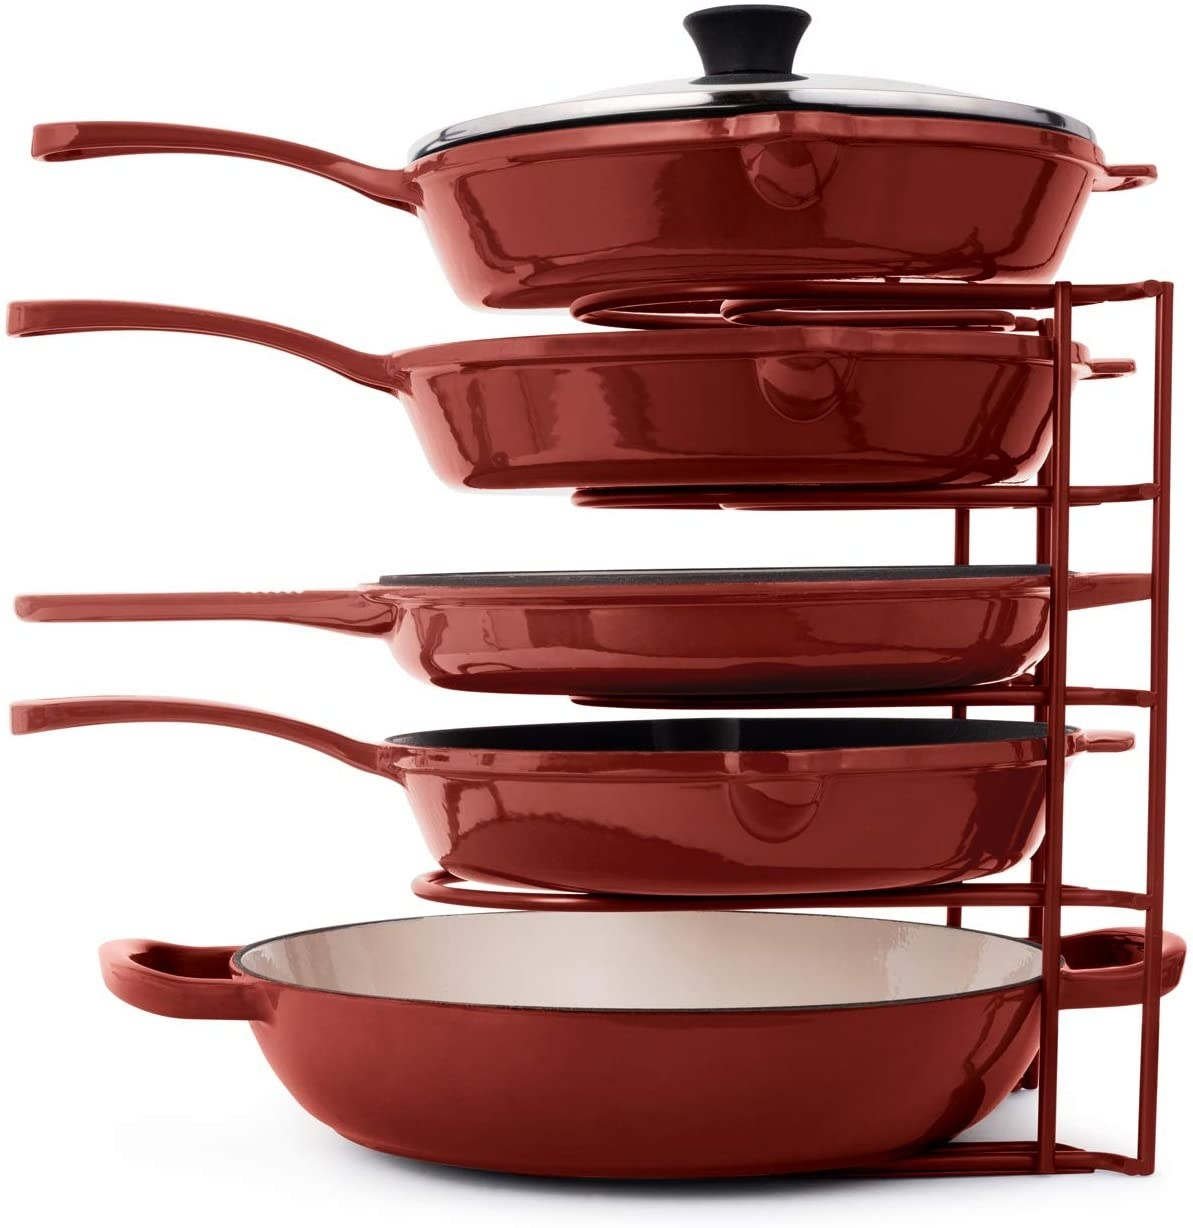 The red Heavy Duty Pan Organizer holding five red pans